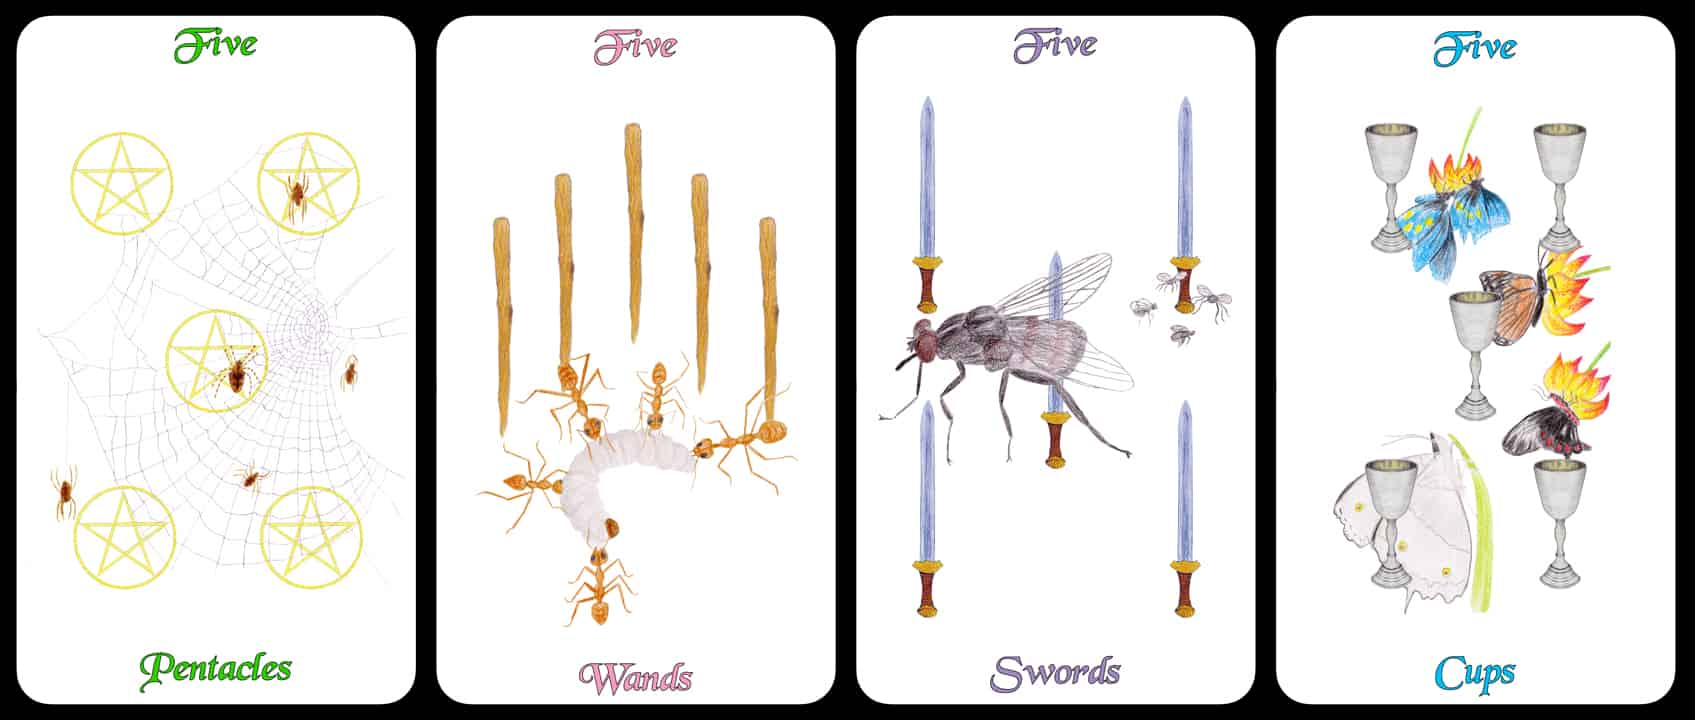 The Fives - The Arthropoda Tarot Deck by Linda Ursin